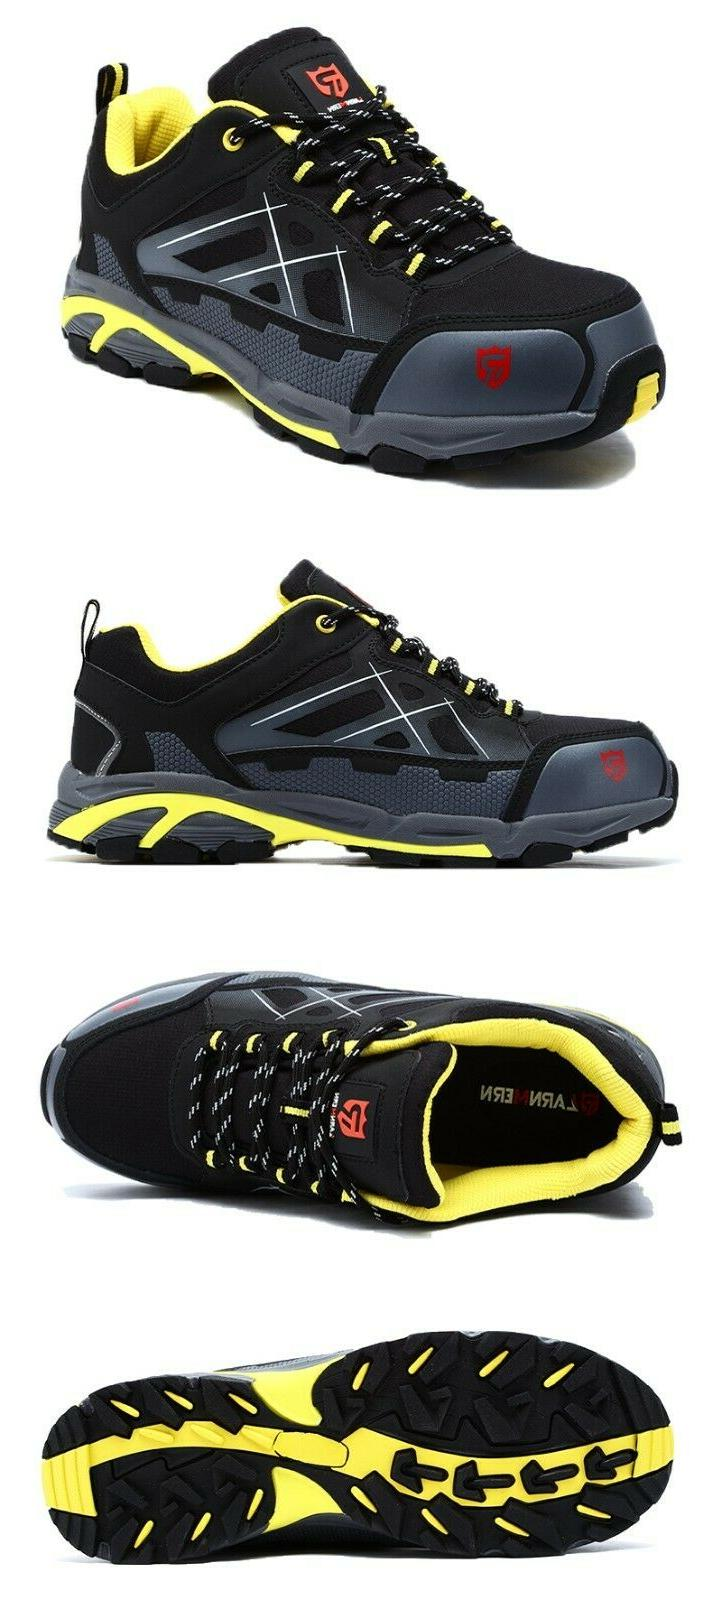 LARNMERN Steel Toe Boots,Mens Work Safety Outdoor Protection Footwear